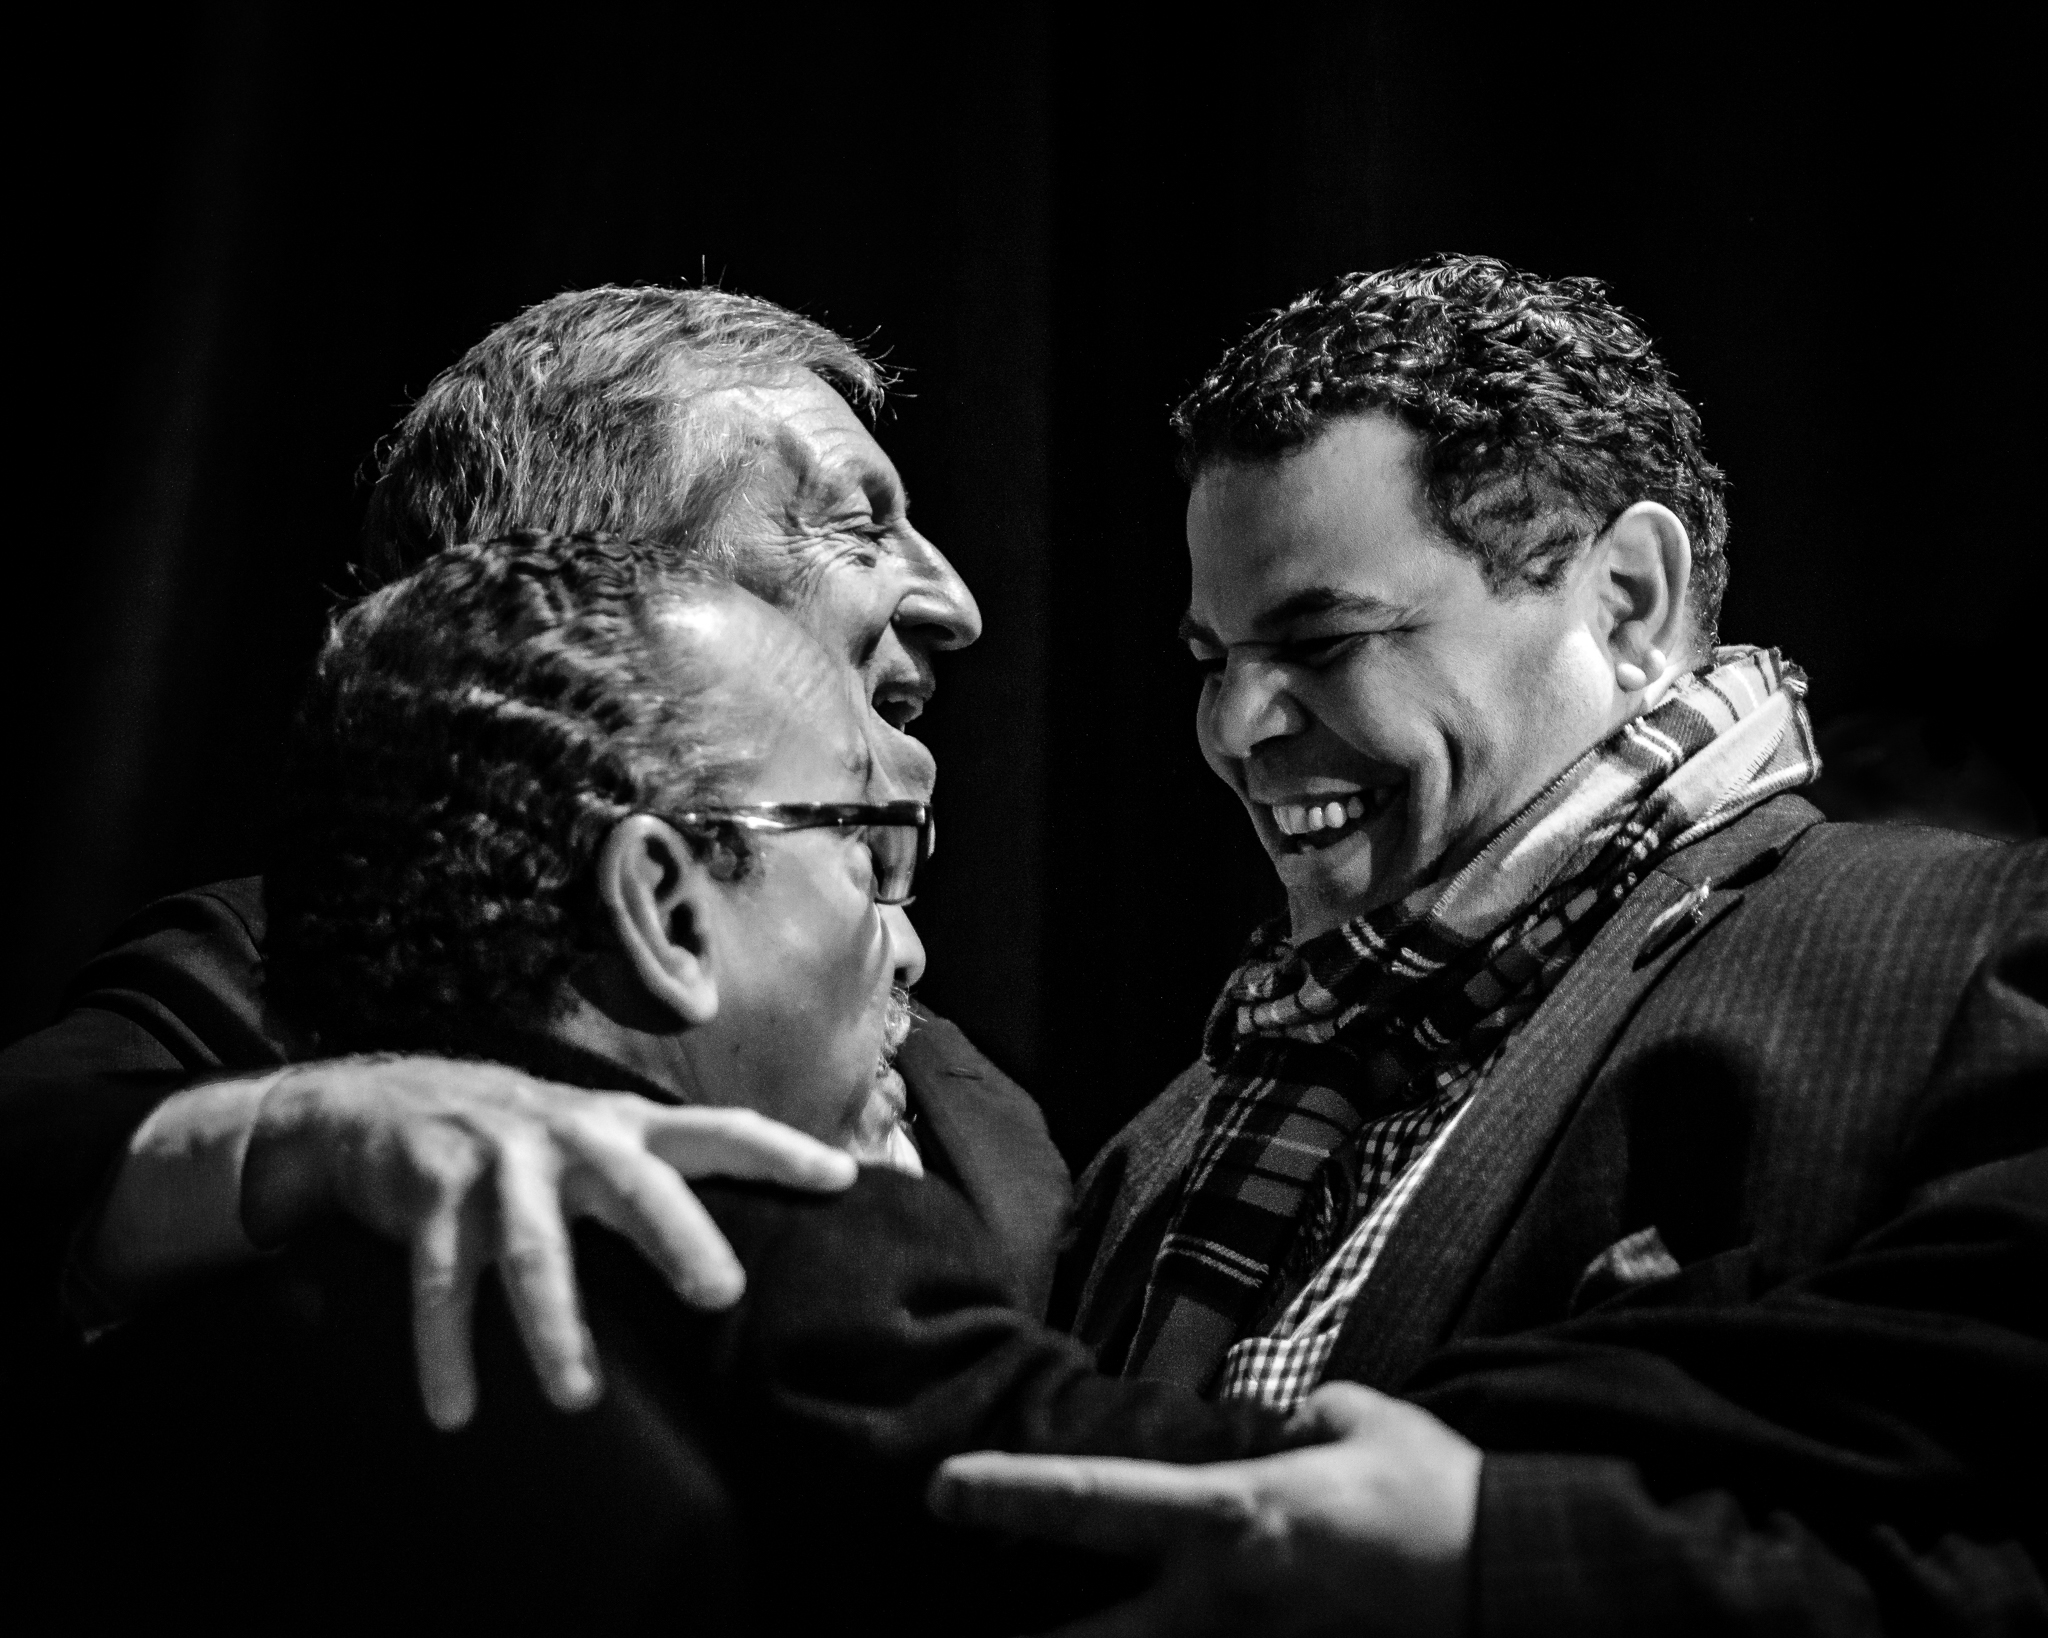 Johnnie Cordero and Tom Steyer embrace one another on stage at a rally in Columbia, South Carolina. February 29, 2020. Photo: Lance Monotone.